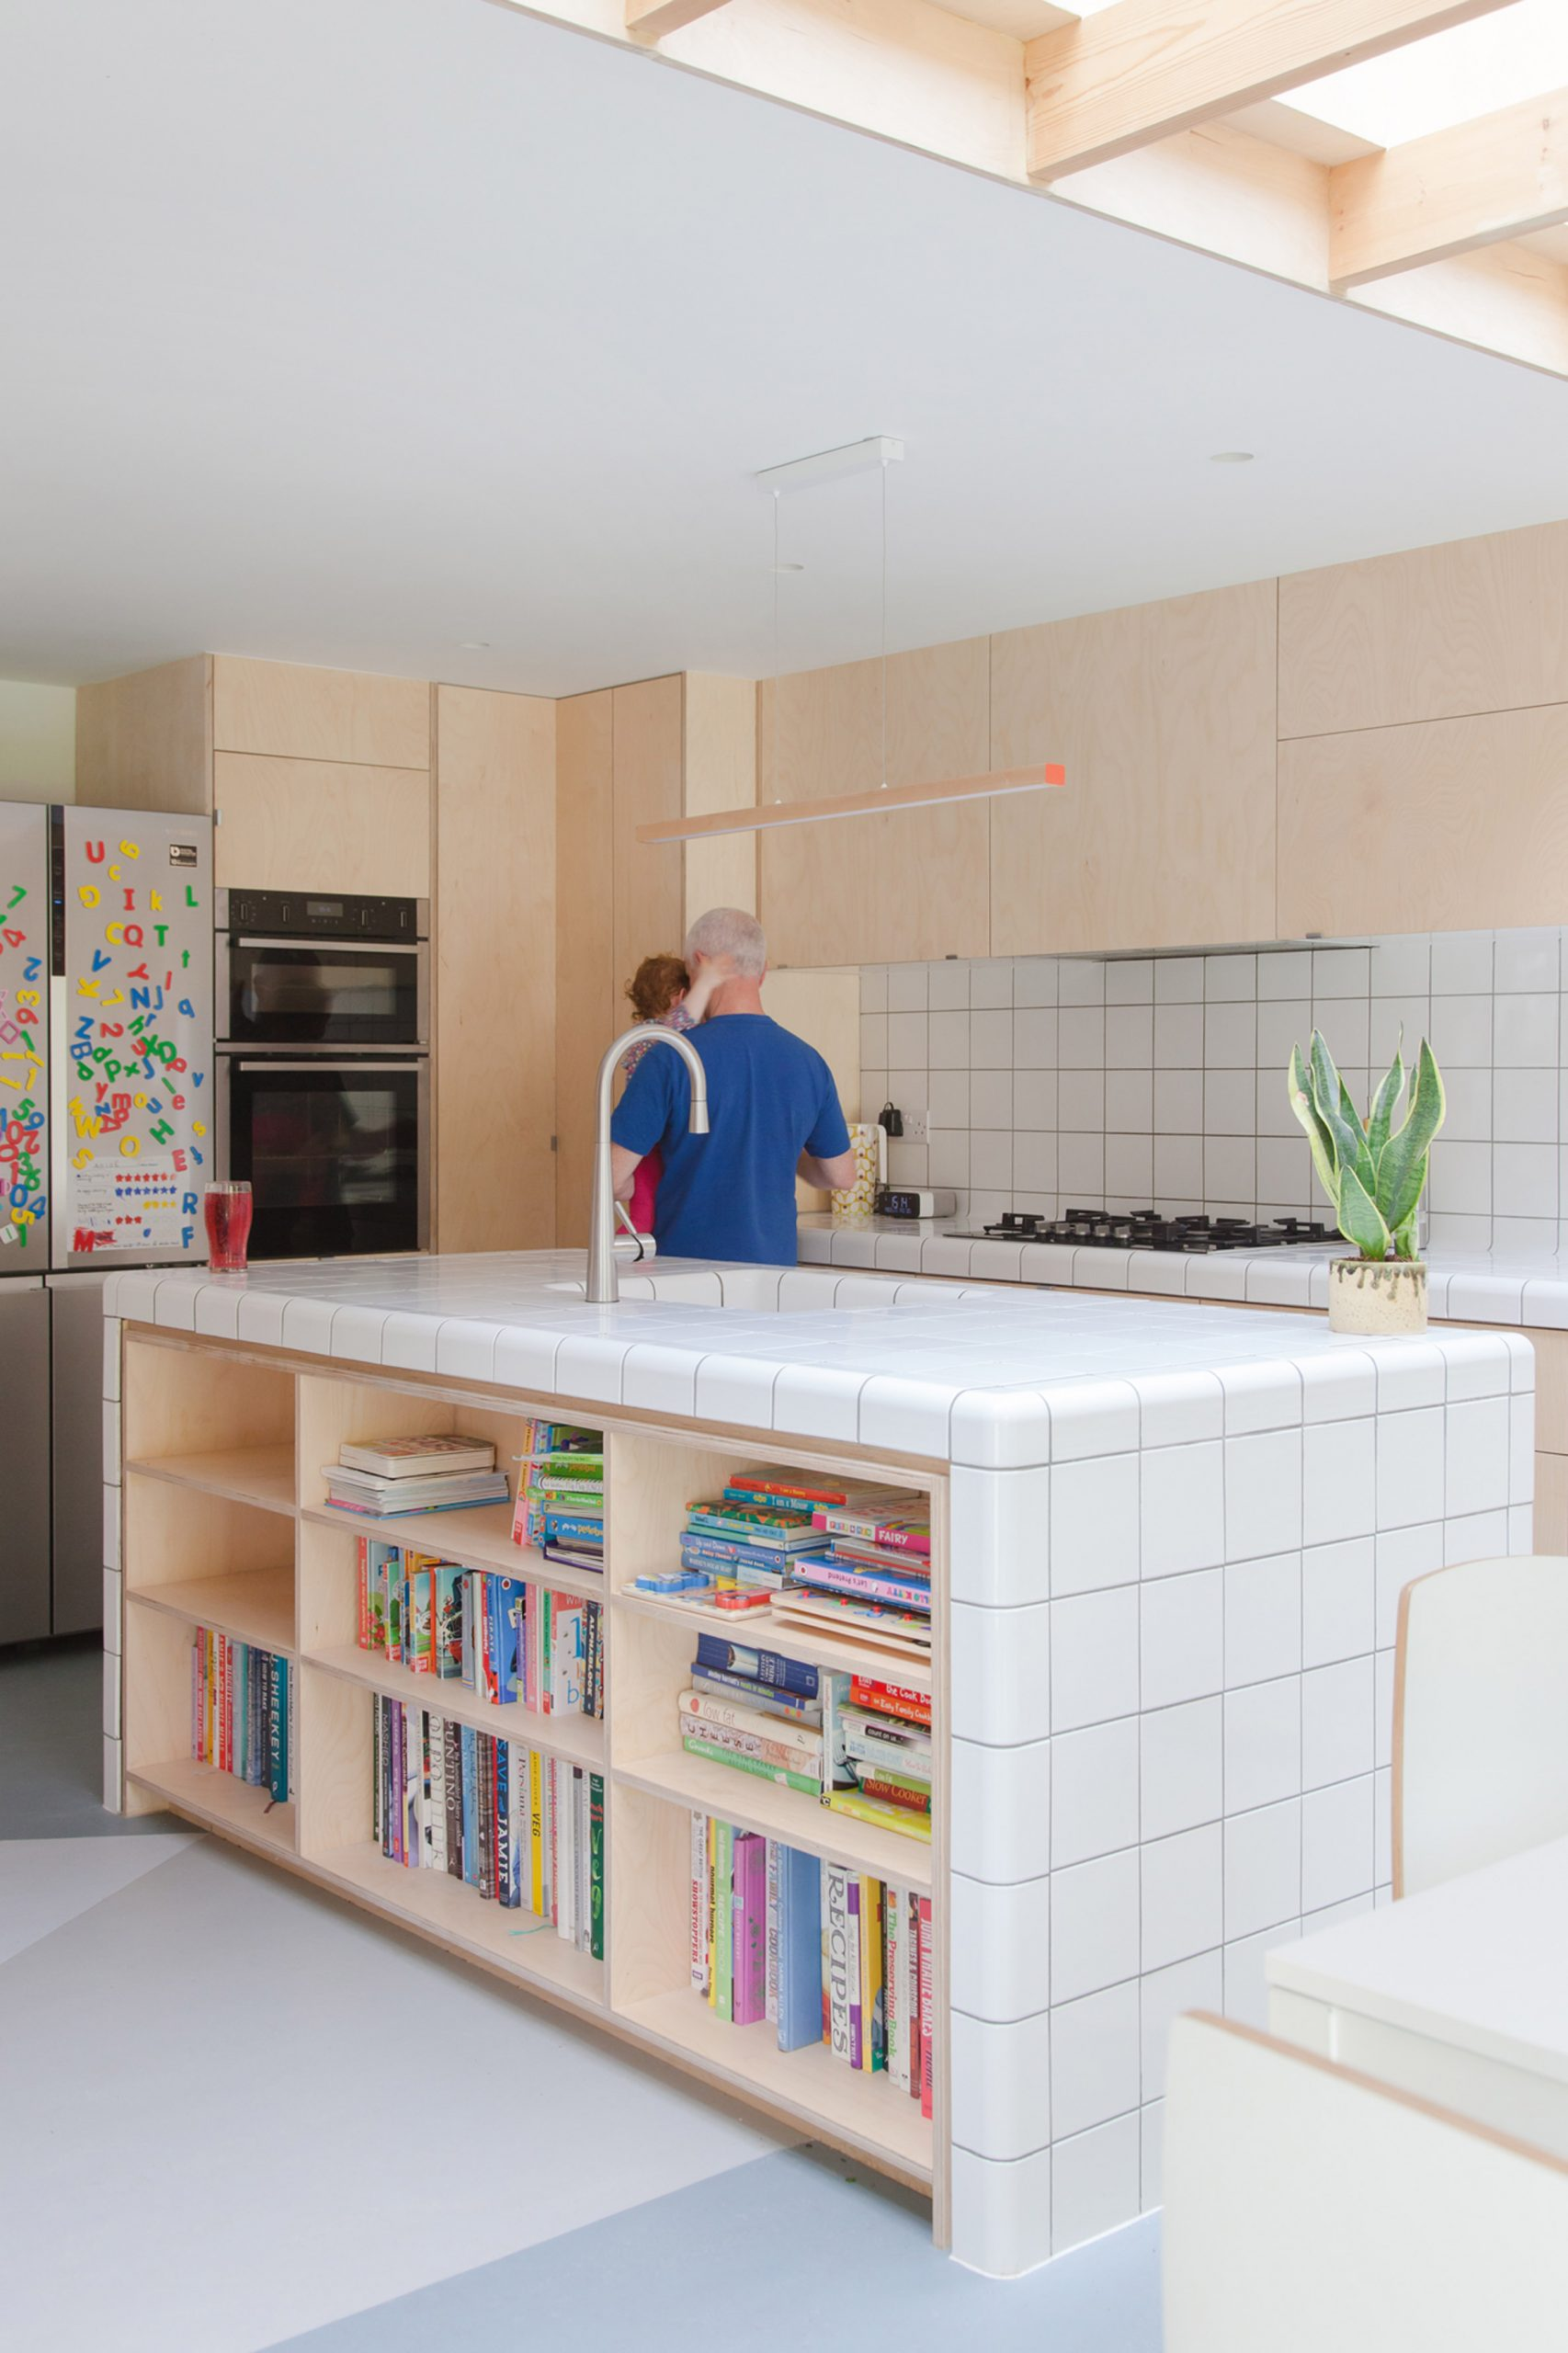 A wooden kitchen with a tiled island